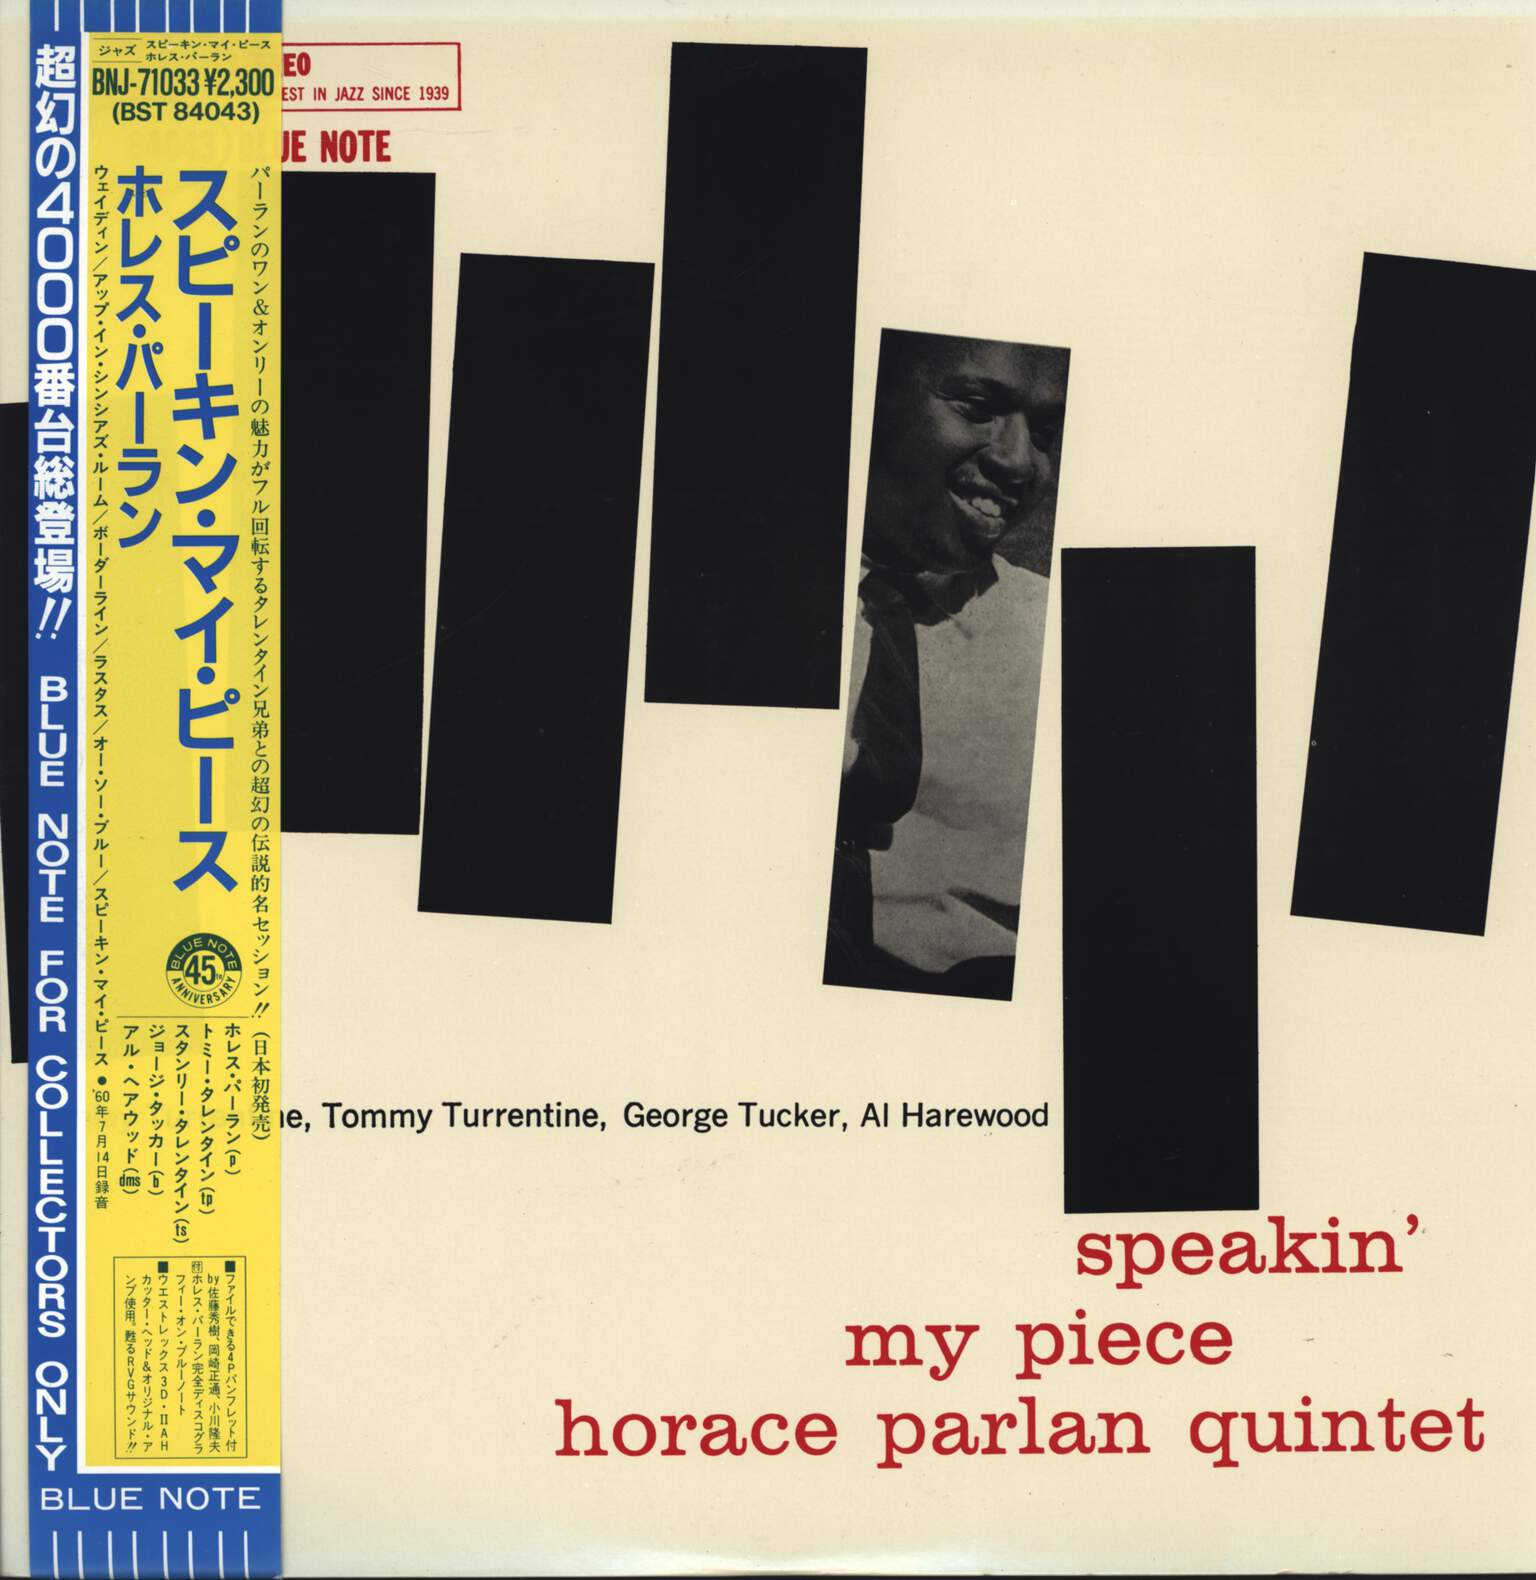 Horace Parlan Quintet: Speakin' My Piece, LP (Vinyl)